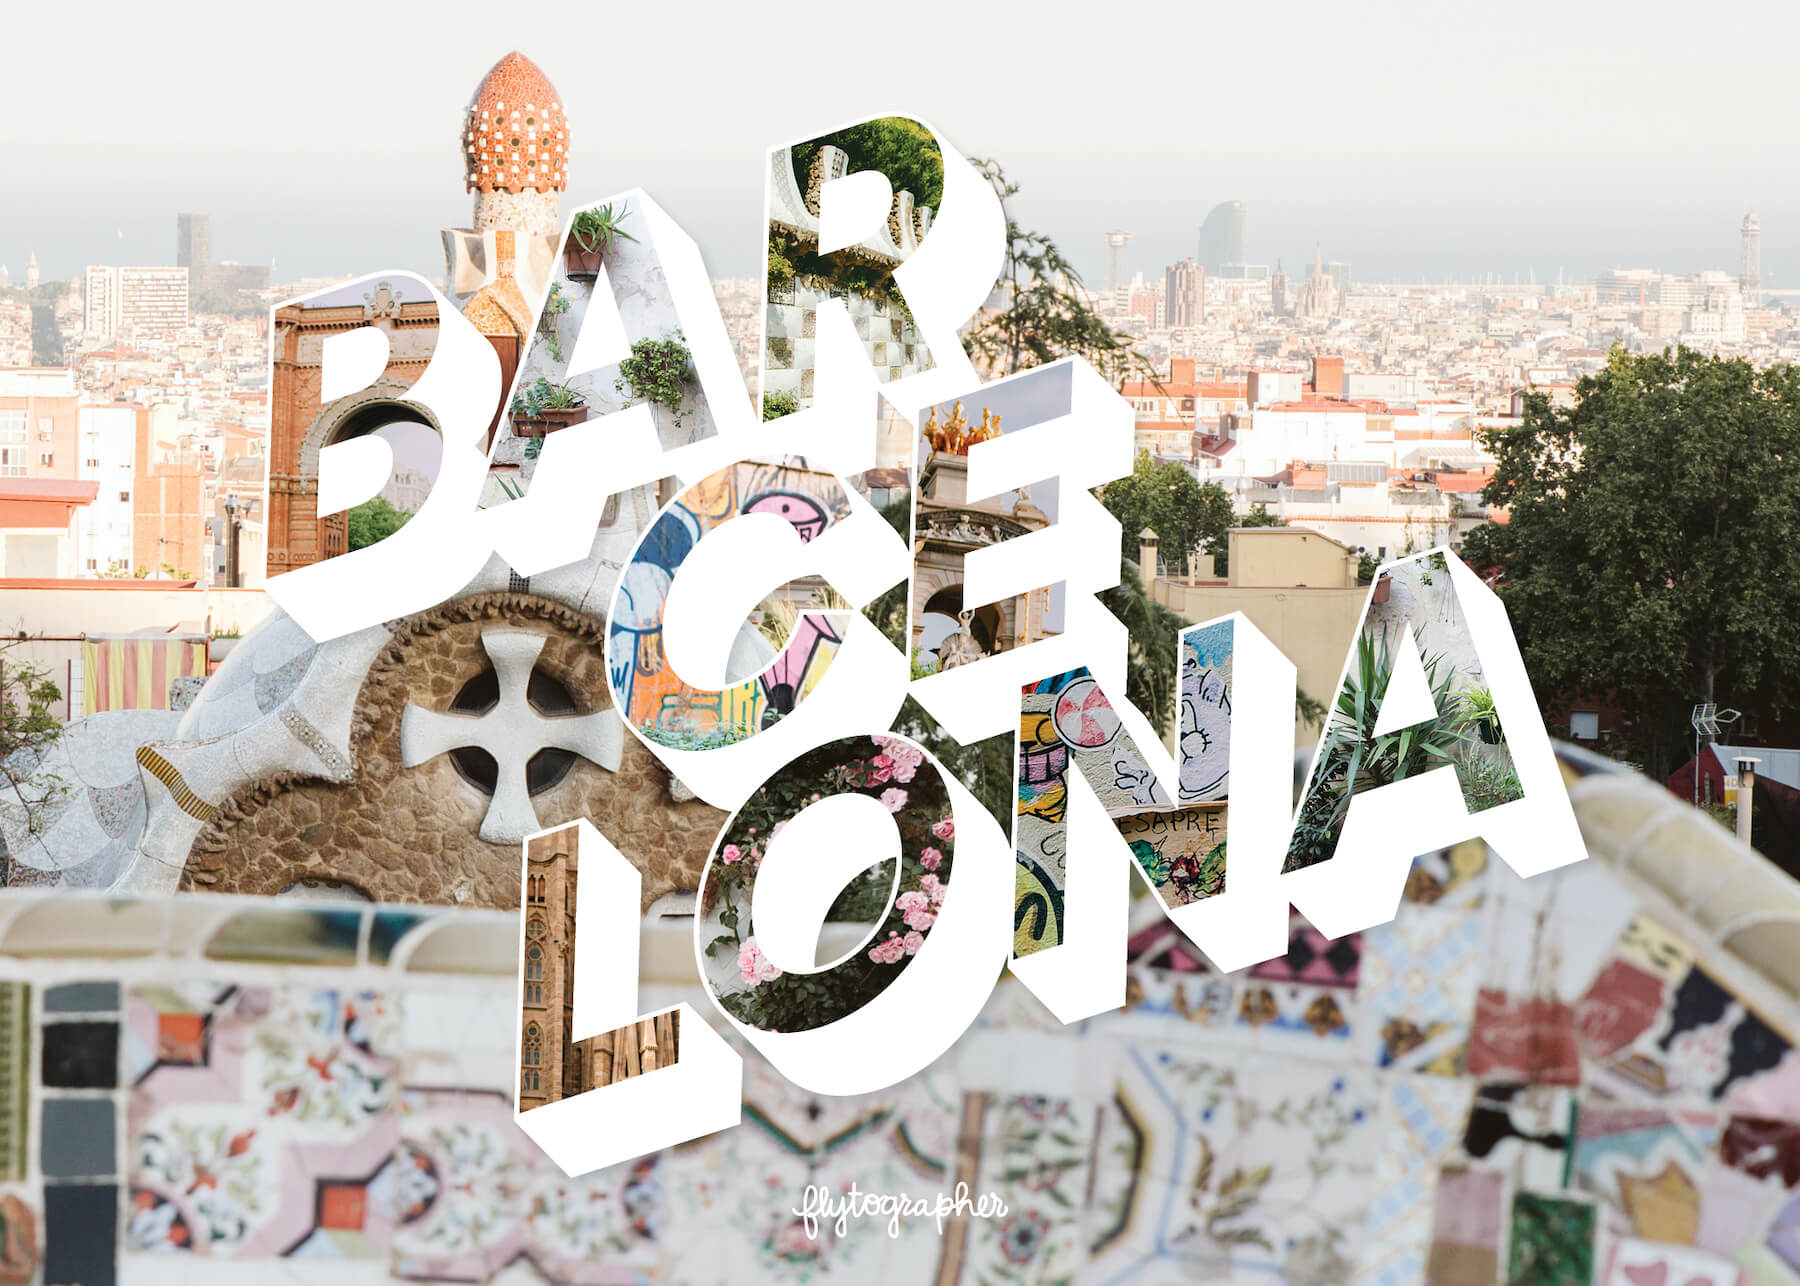 FinalCity-Puzzles_Barcelona